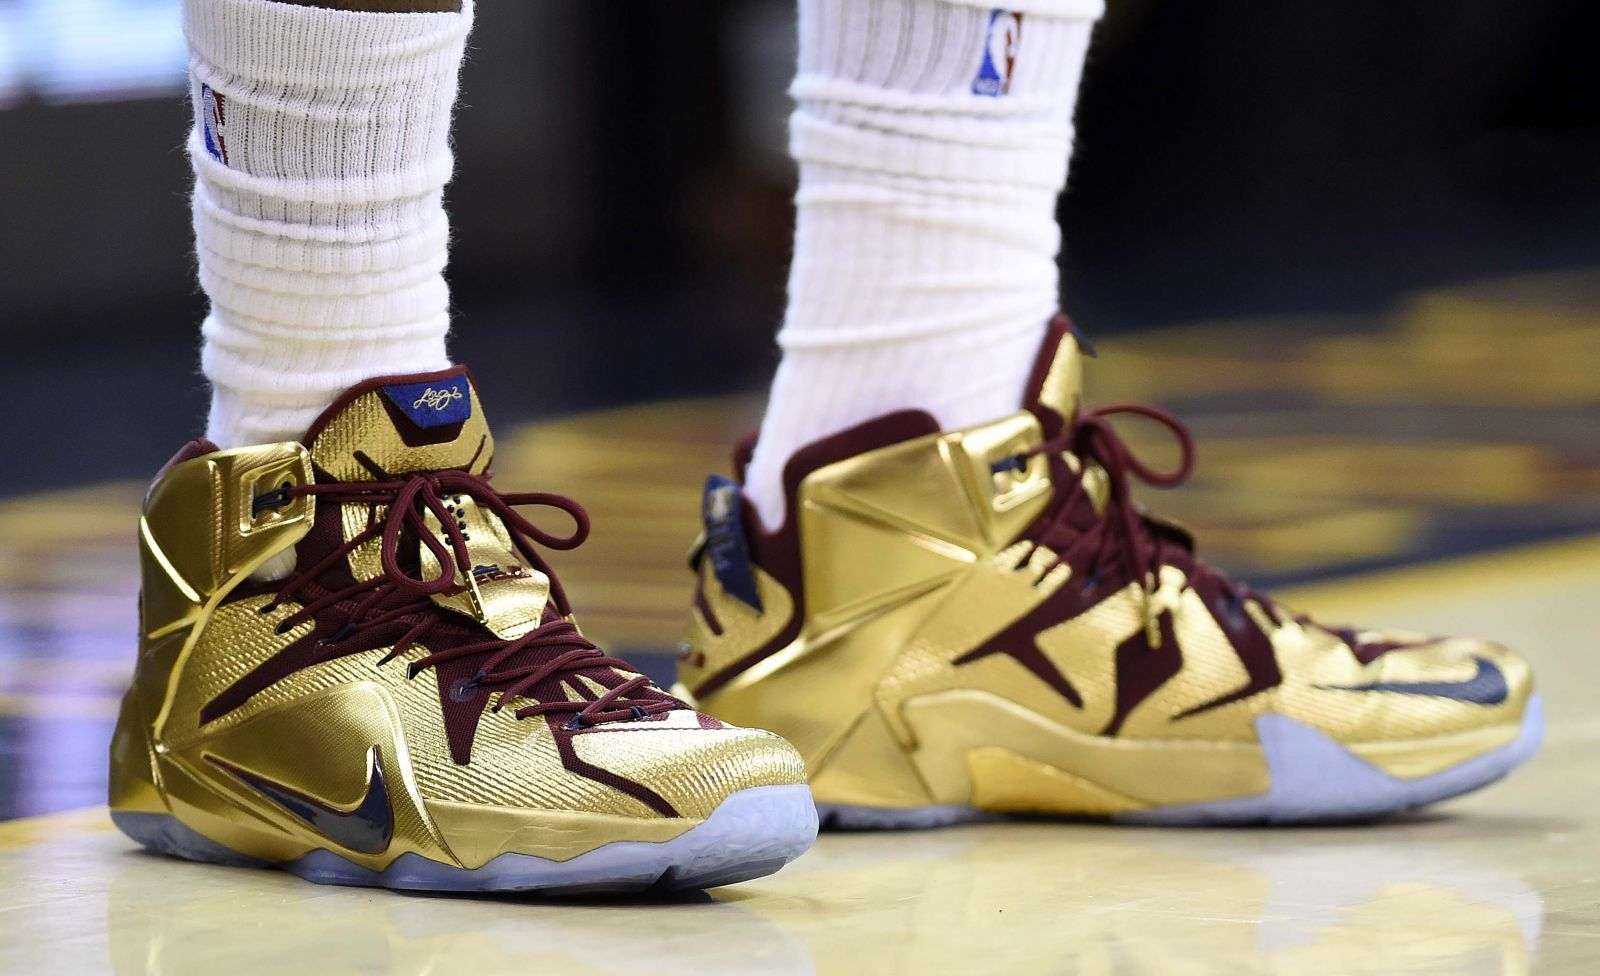 reputable site 7b5d1 7164d  SoleWatch  LeBron James Going for Gold in Game 6 Sneakers